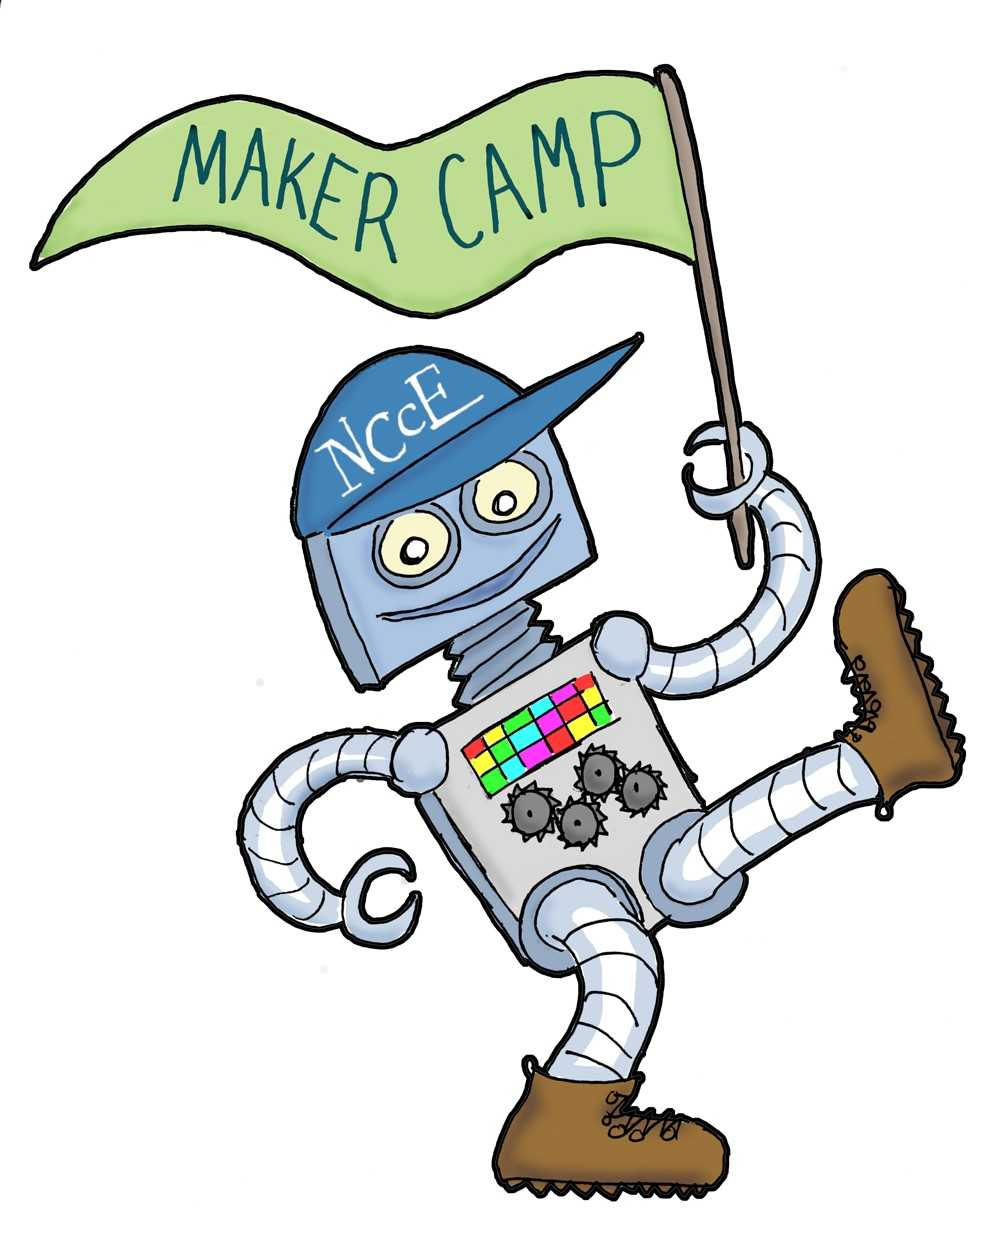 NCCE 2018 Maker Camps are back and better then ever!